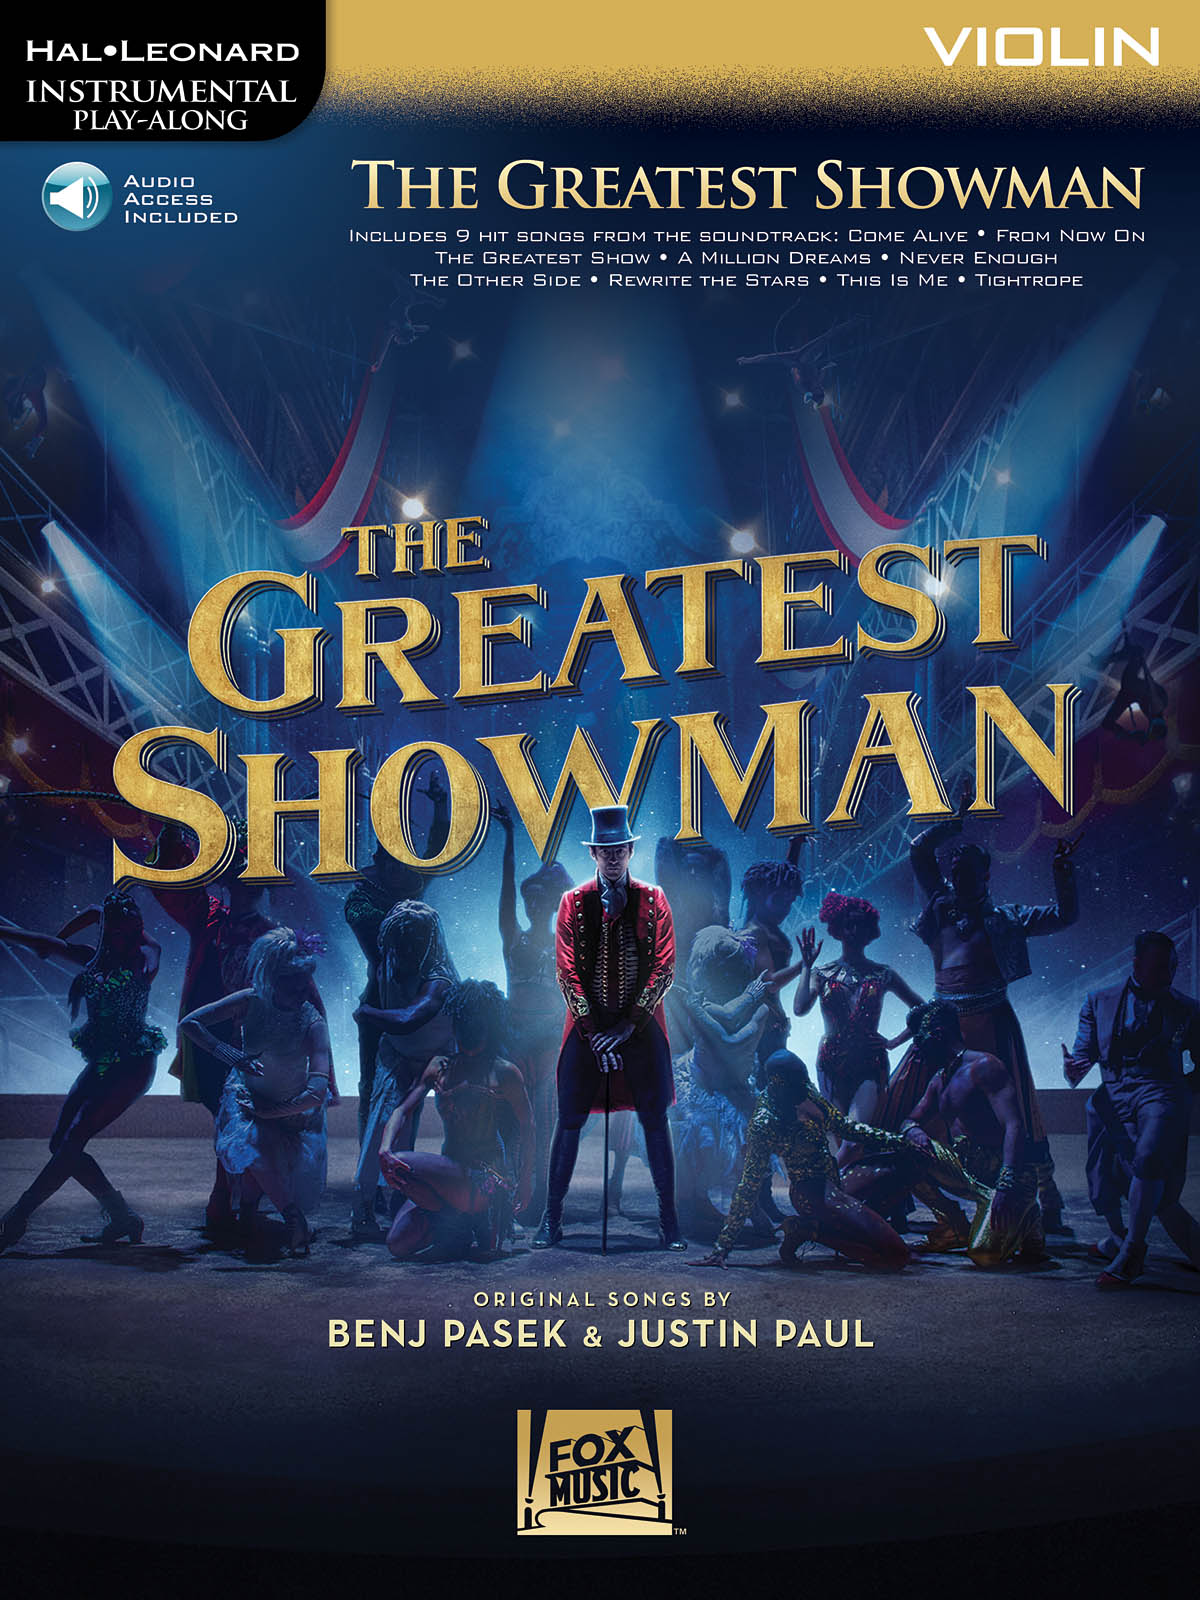 Instrumental Play-Along: The Greatest Showman - Violin (Book/Online Audio) (Hal Leonard Instrumental Play-Along)